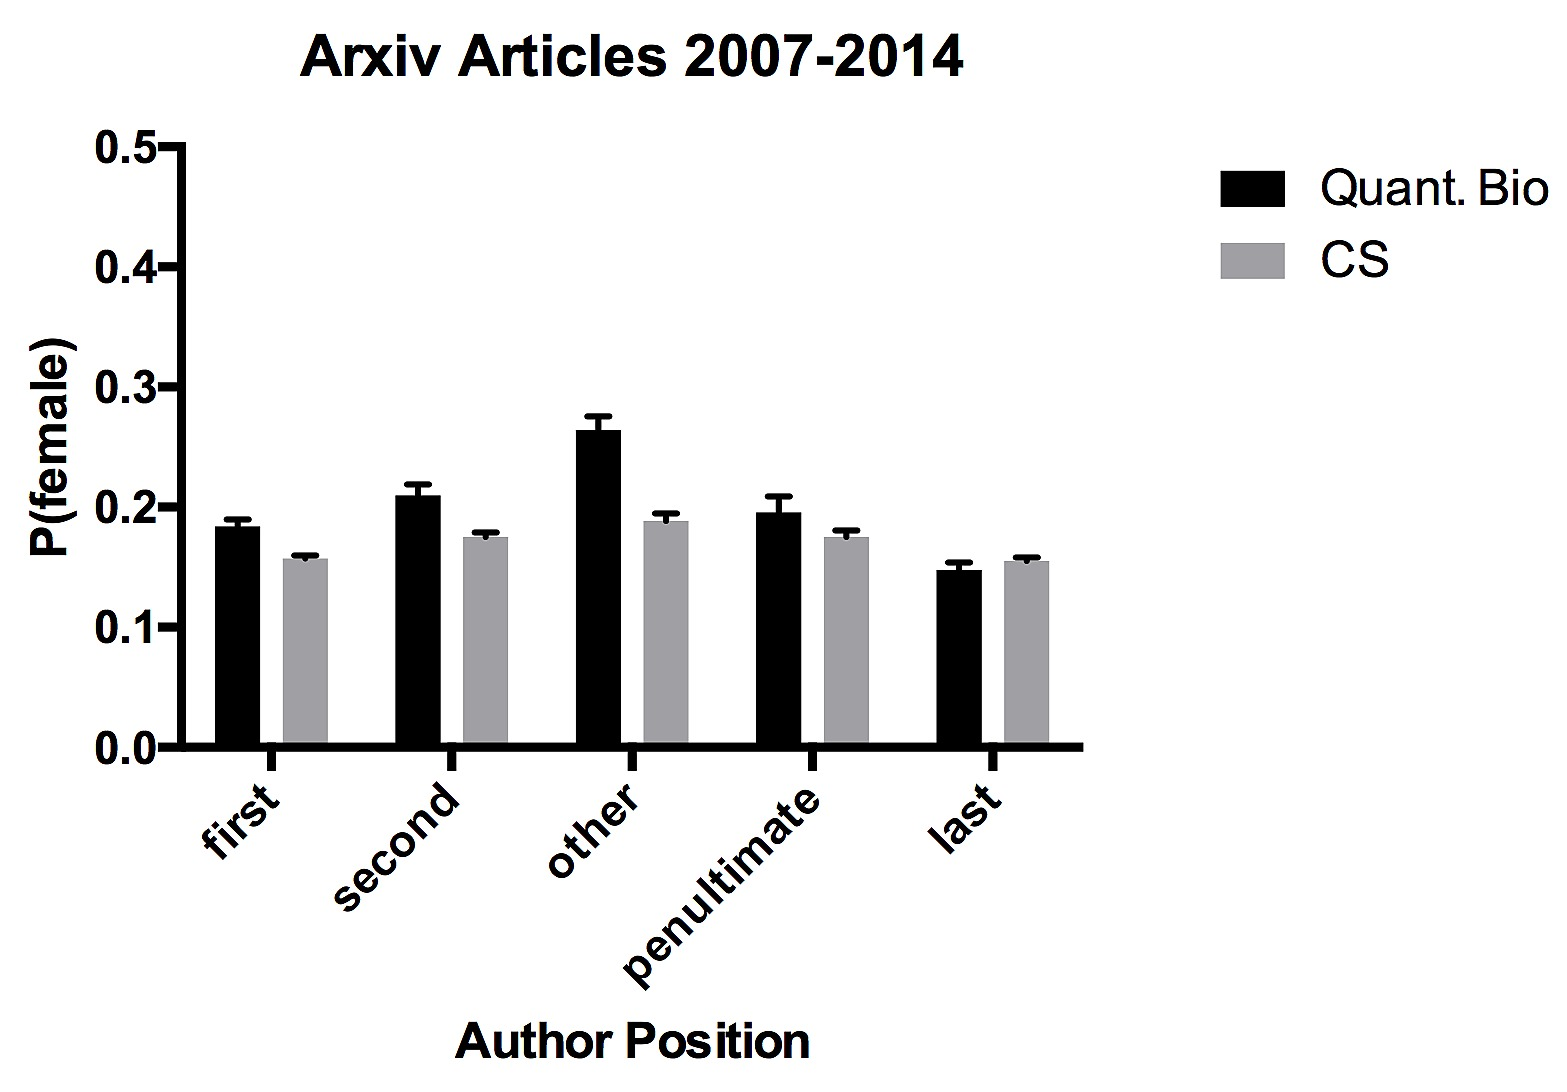 Gender in arXiv